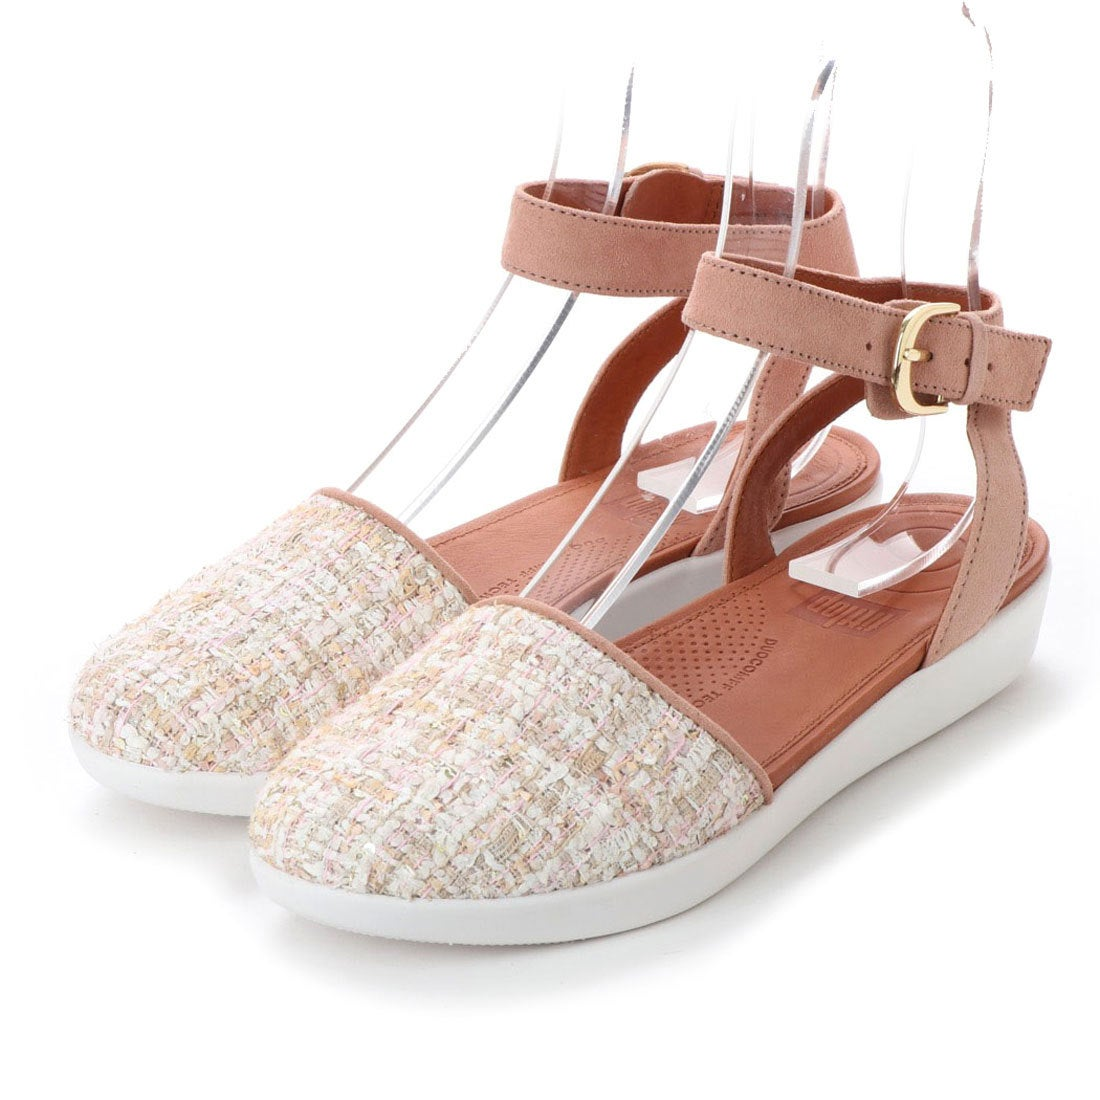 459b60eb6fcccb fitflop フィットフロップ FitFlop COVA CLOSED-TOE SANDALS - LUXE-TWEED (Dusky Pink)  -アウトレット通販 ロコレット (LOCOLET)